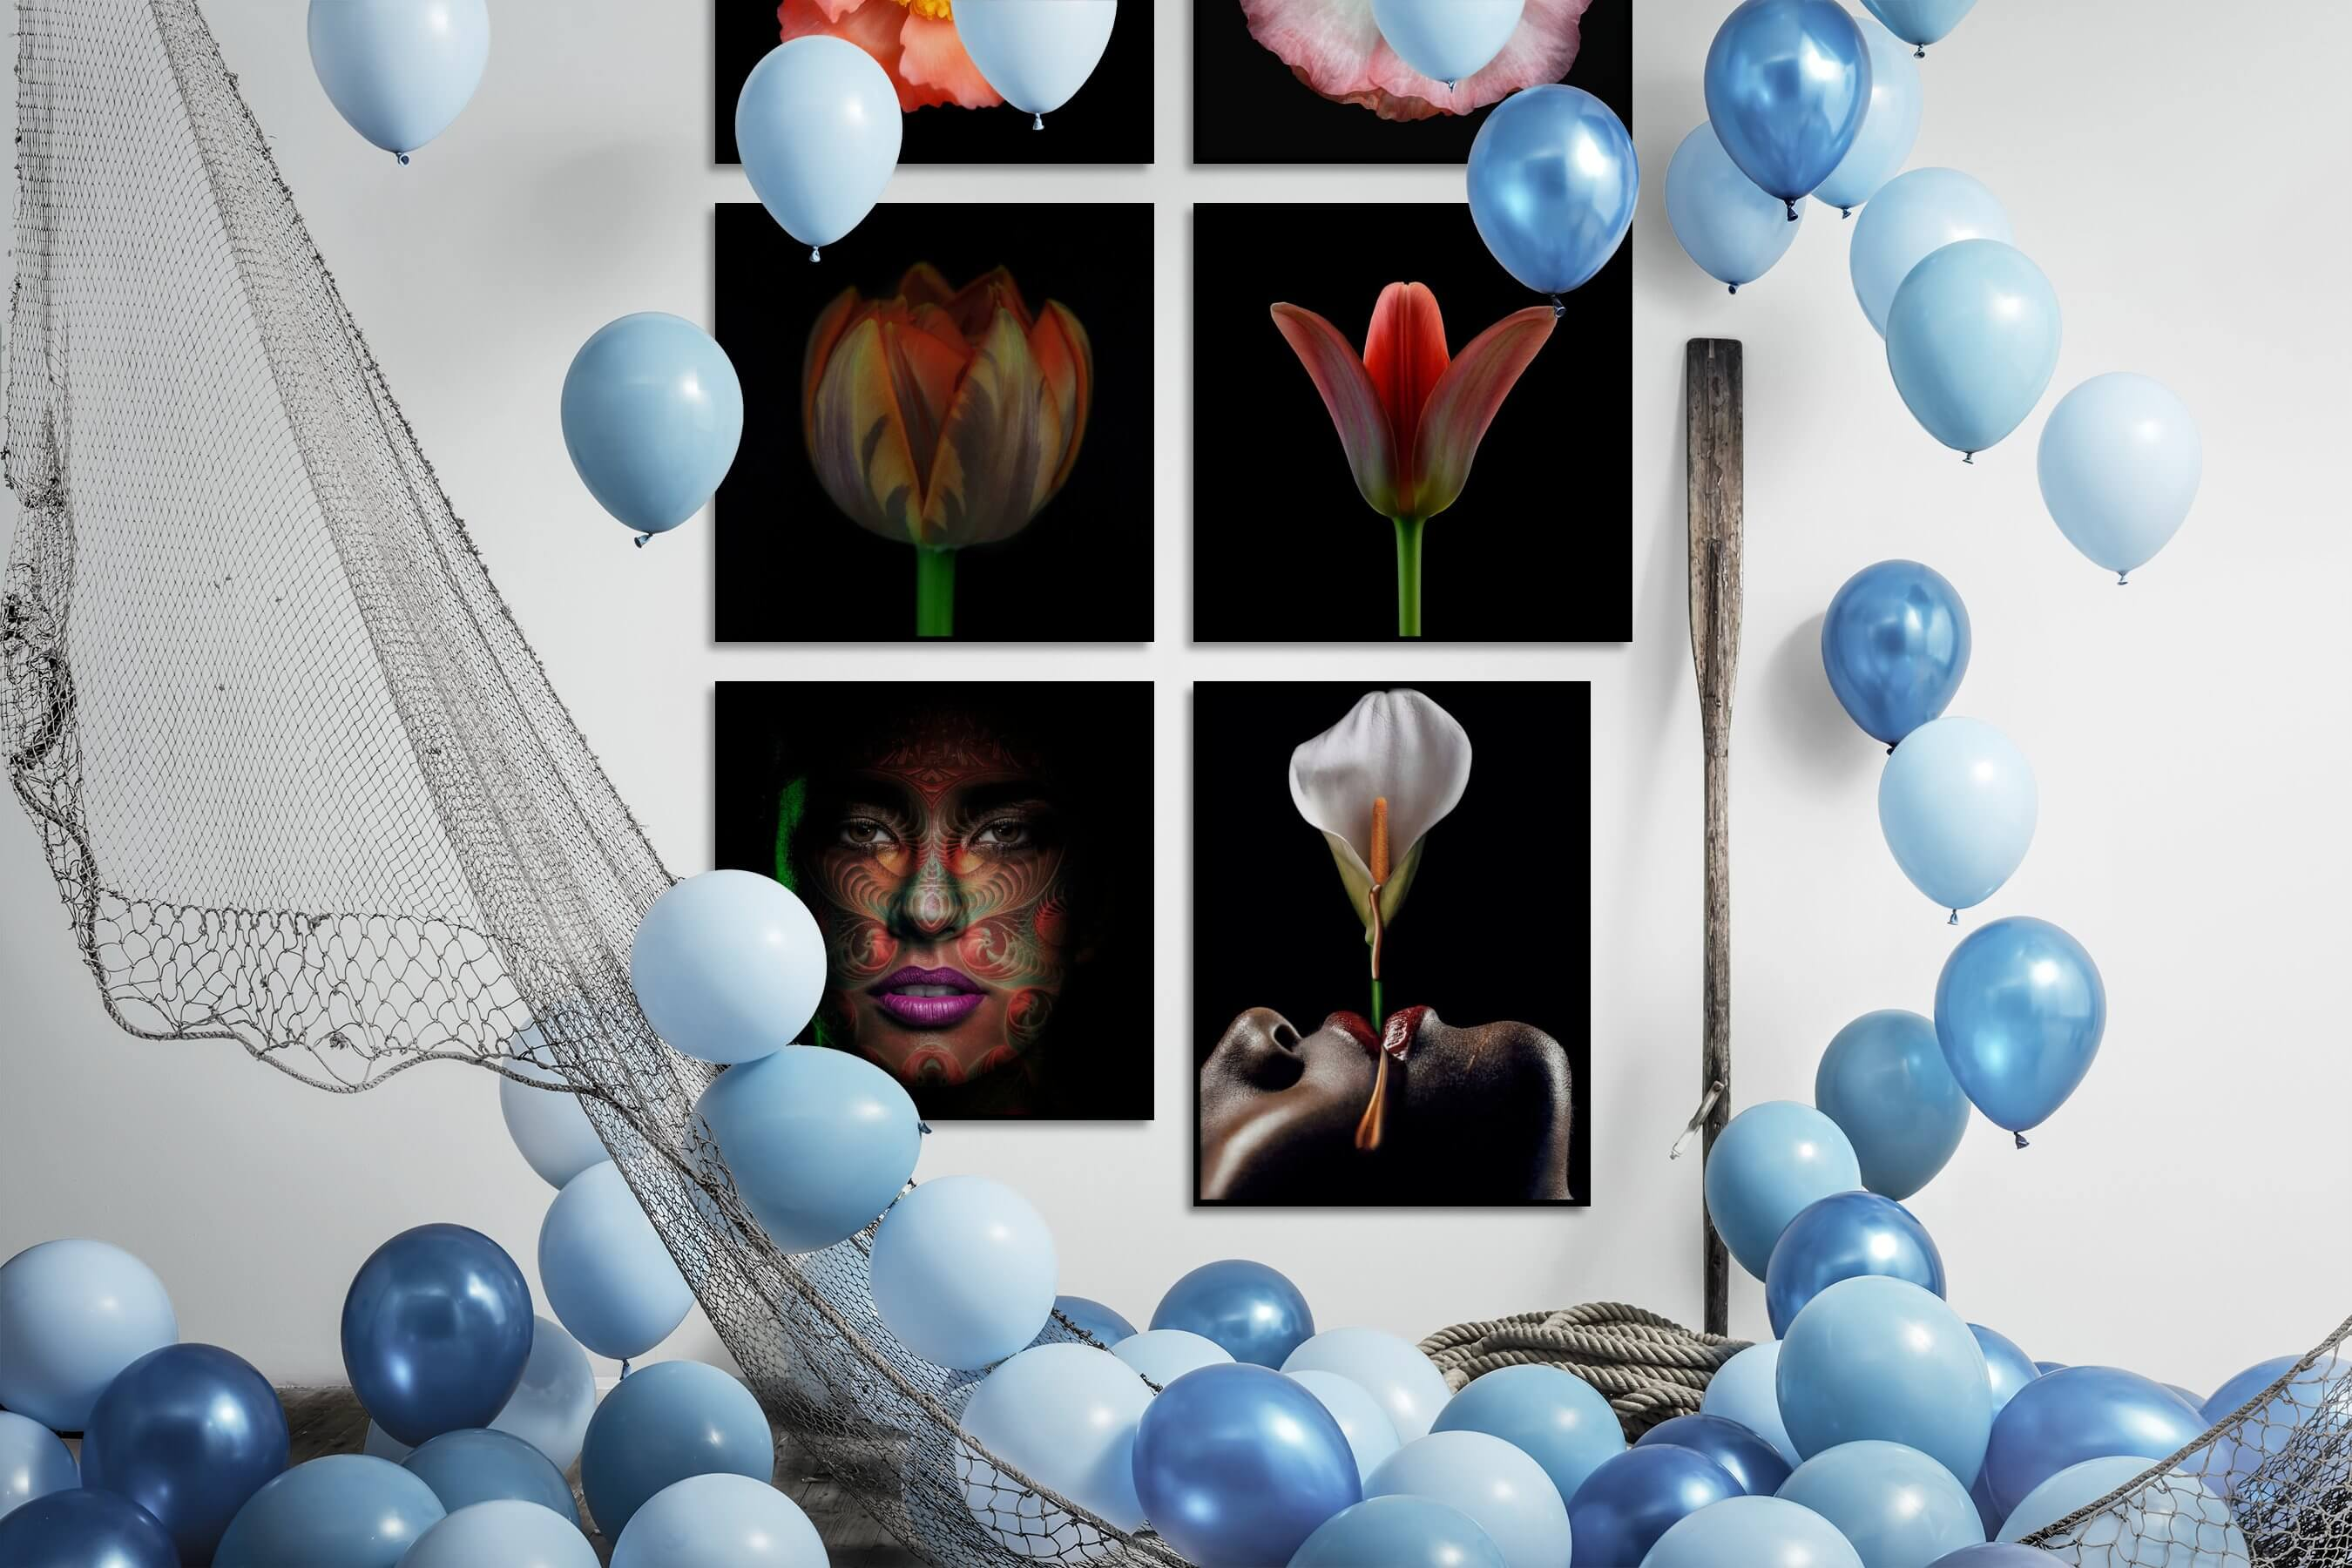 Gallery wall idea with six framed pictures arranged on a wall depicting Dark Tones, For the Minimalist, Flowers & Plants, Fashion & Beauty, and For the Moderate